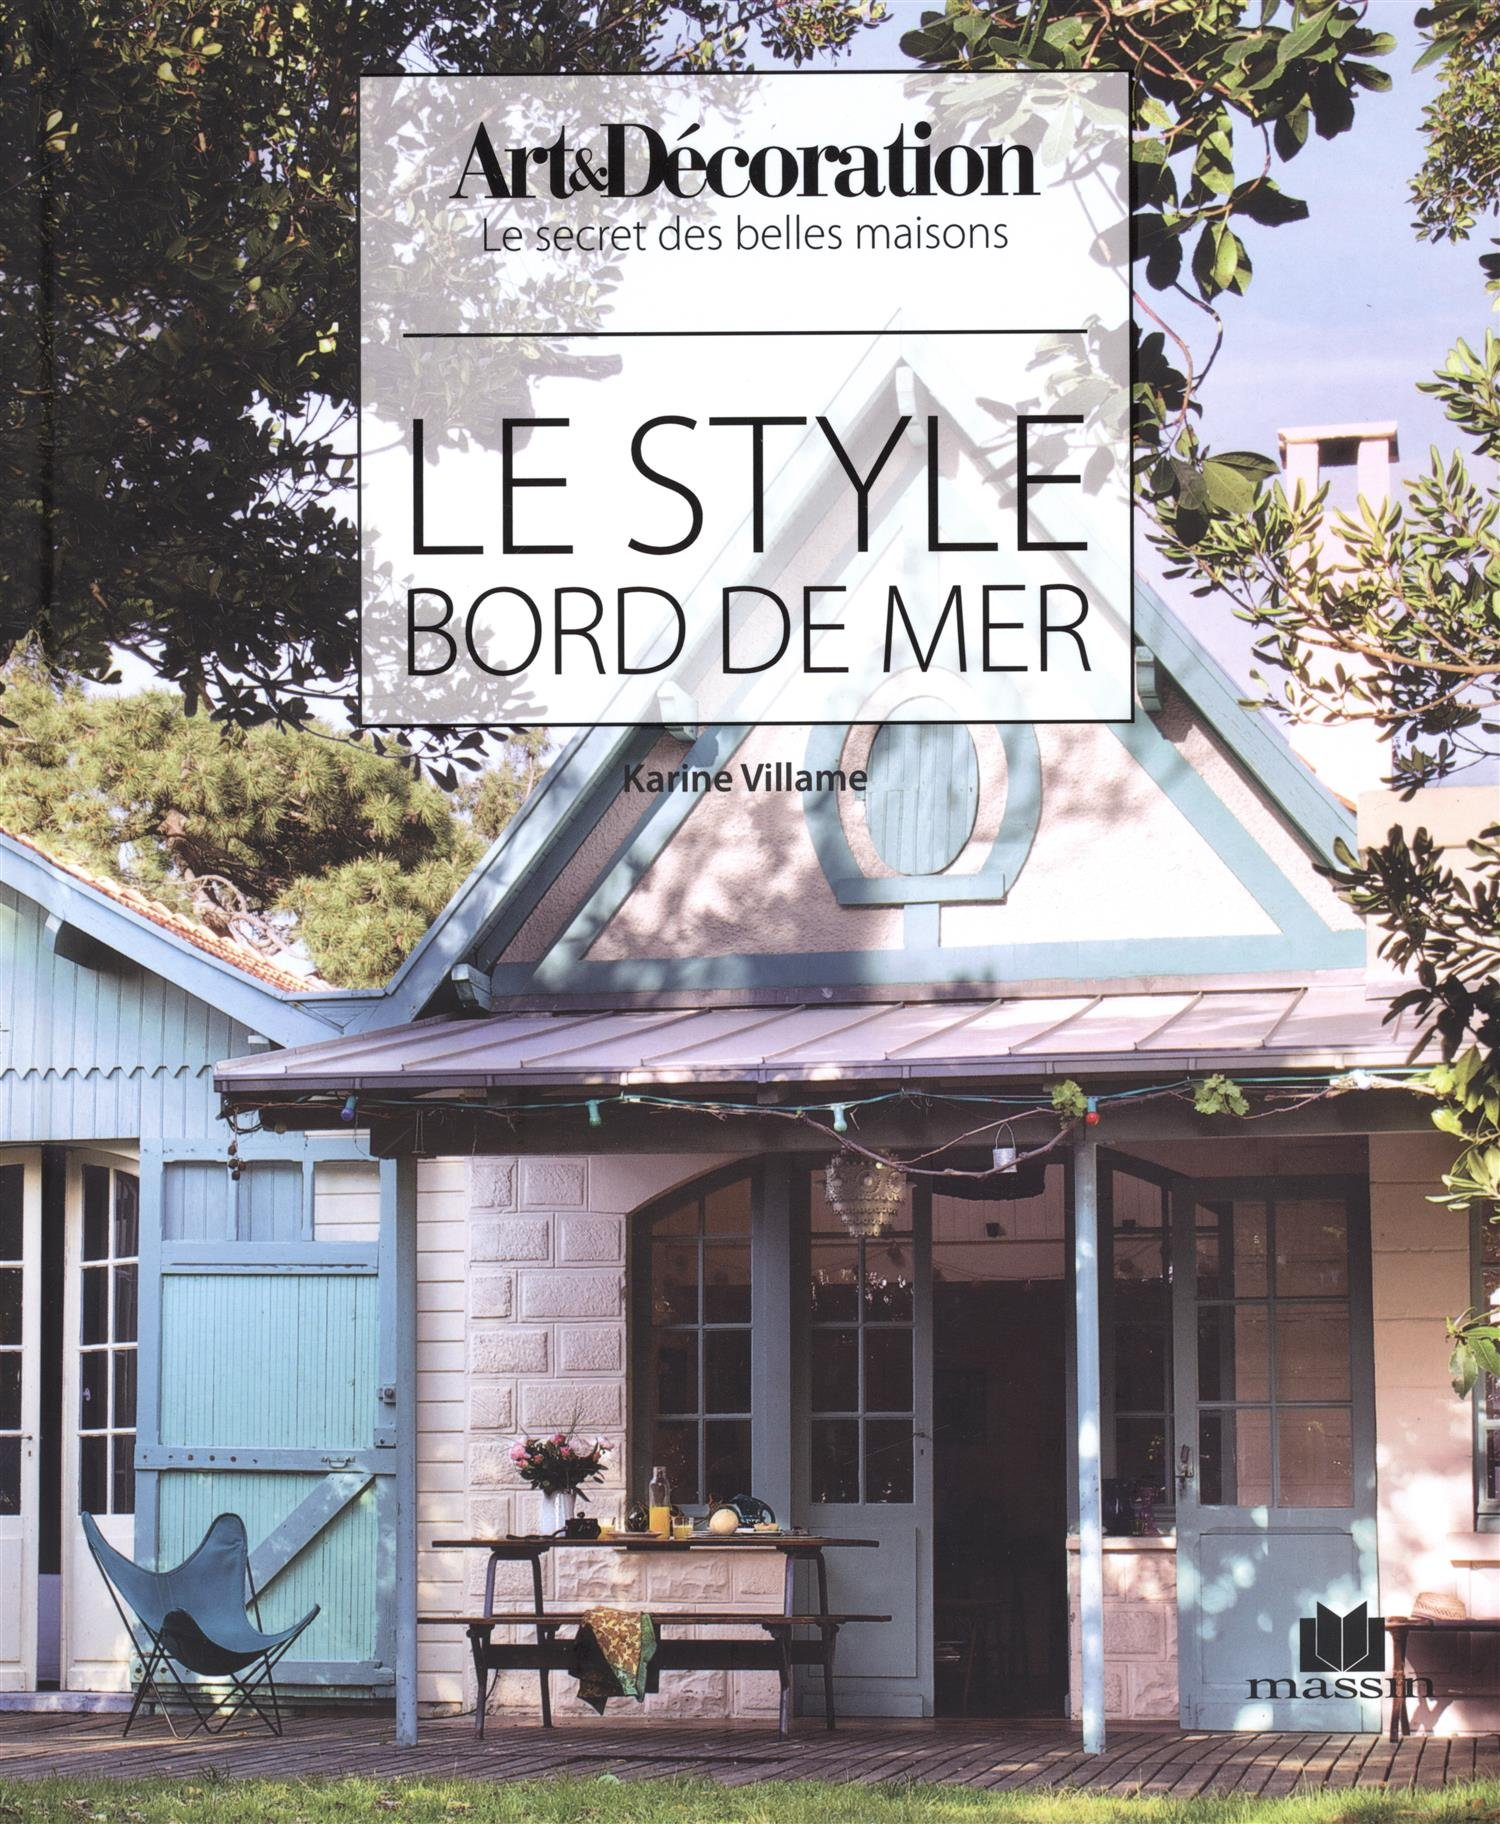 Le style bord de mer: Amazon.co.uk: Karine Villame, Collectif ...